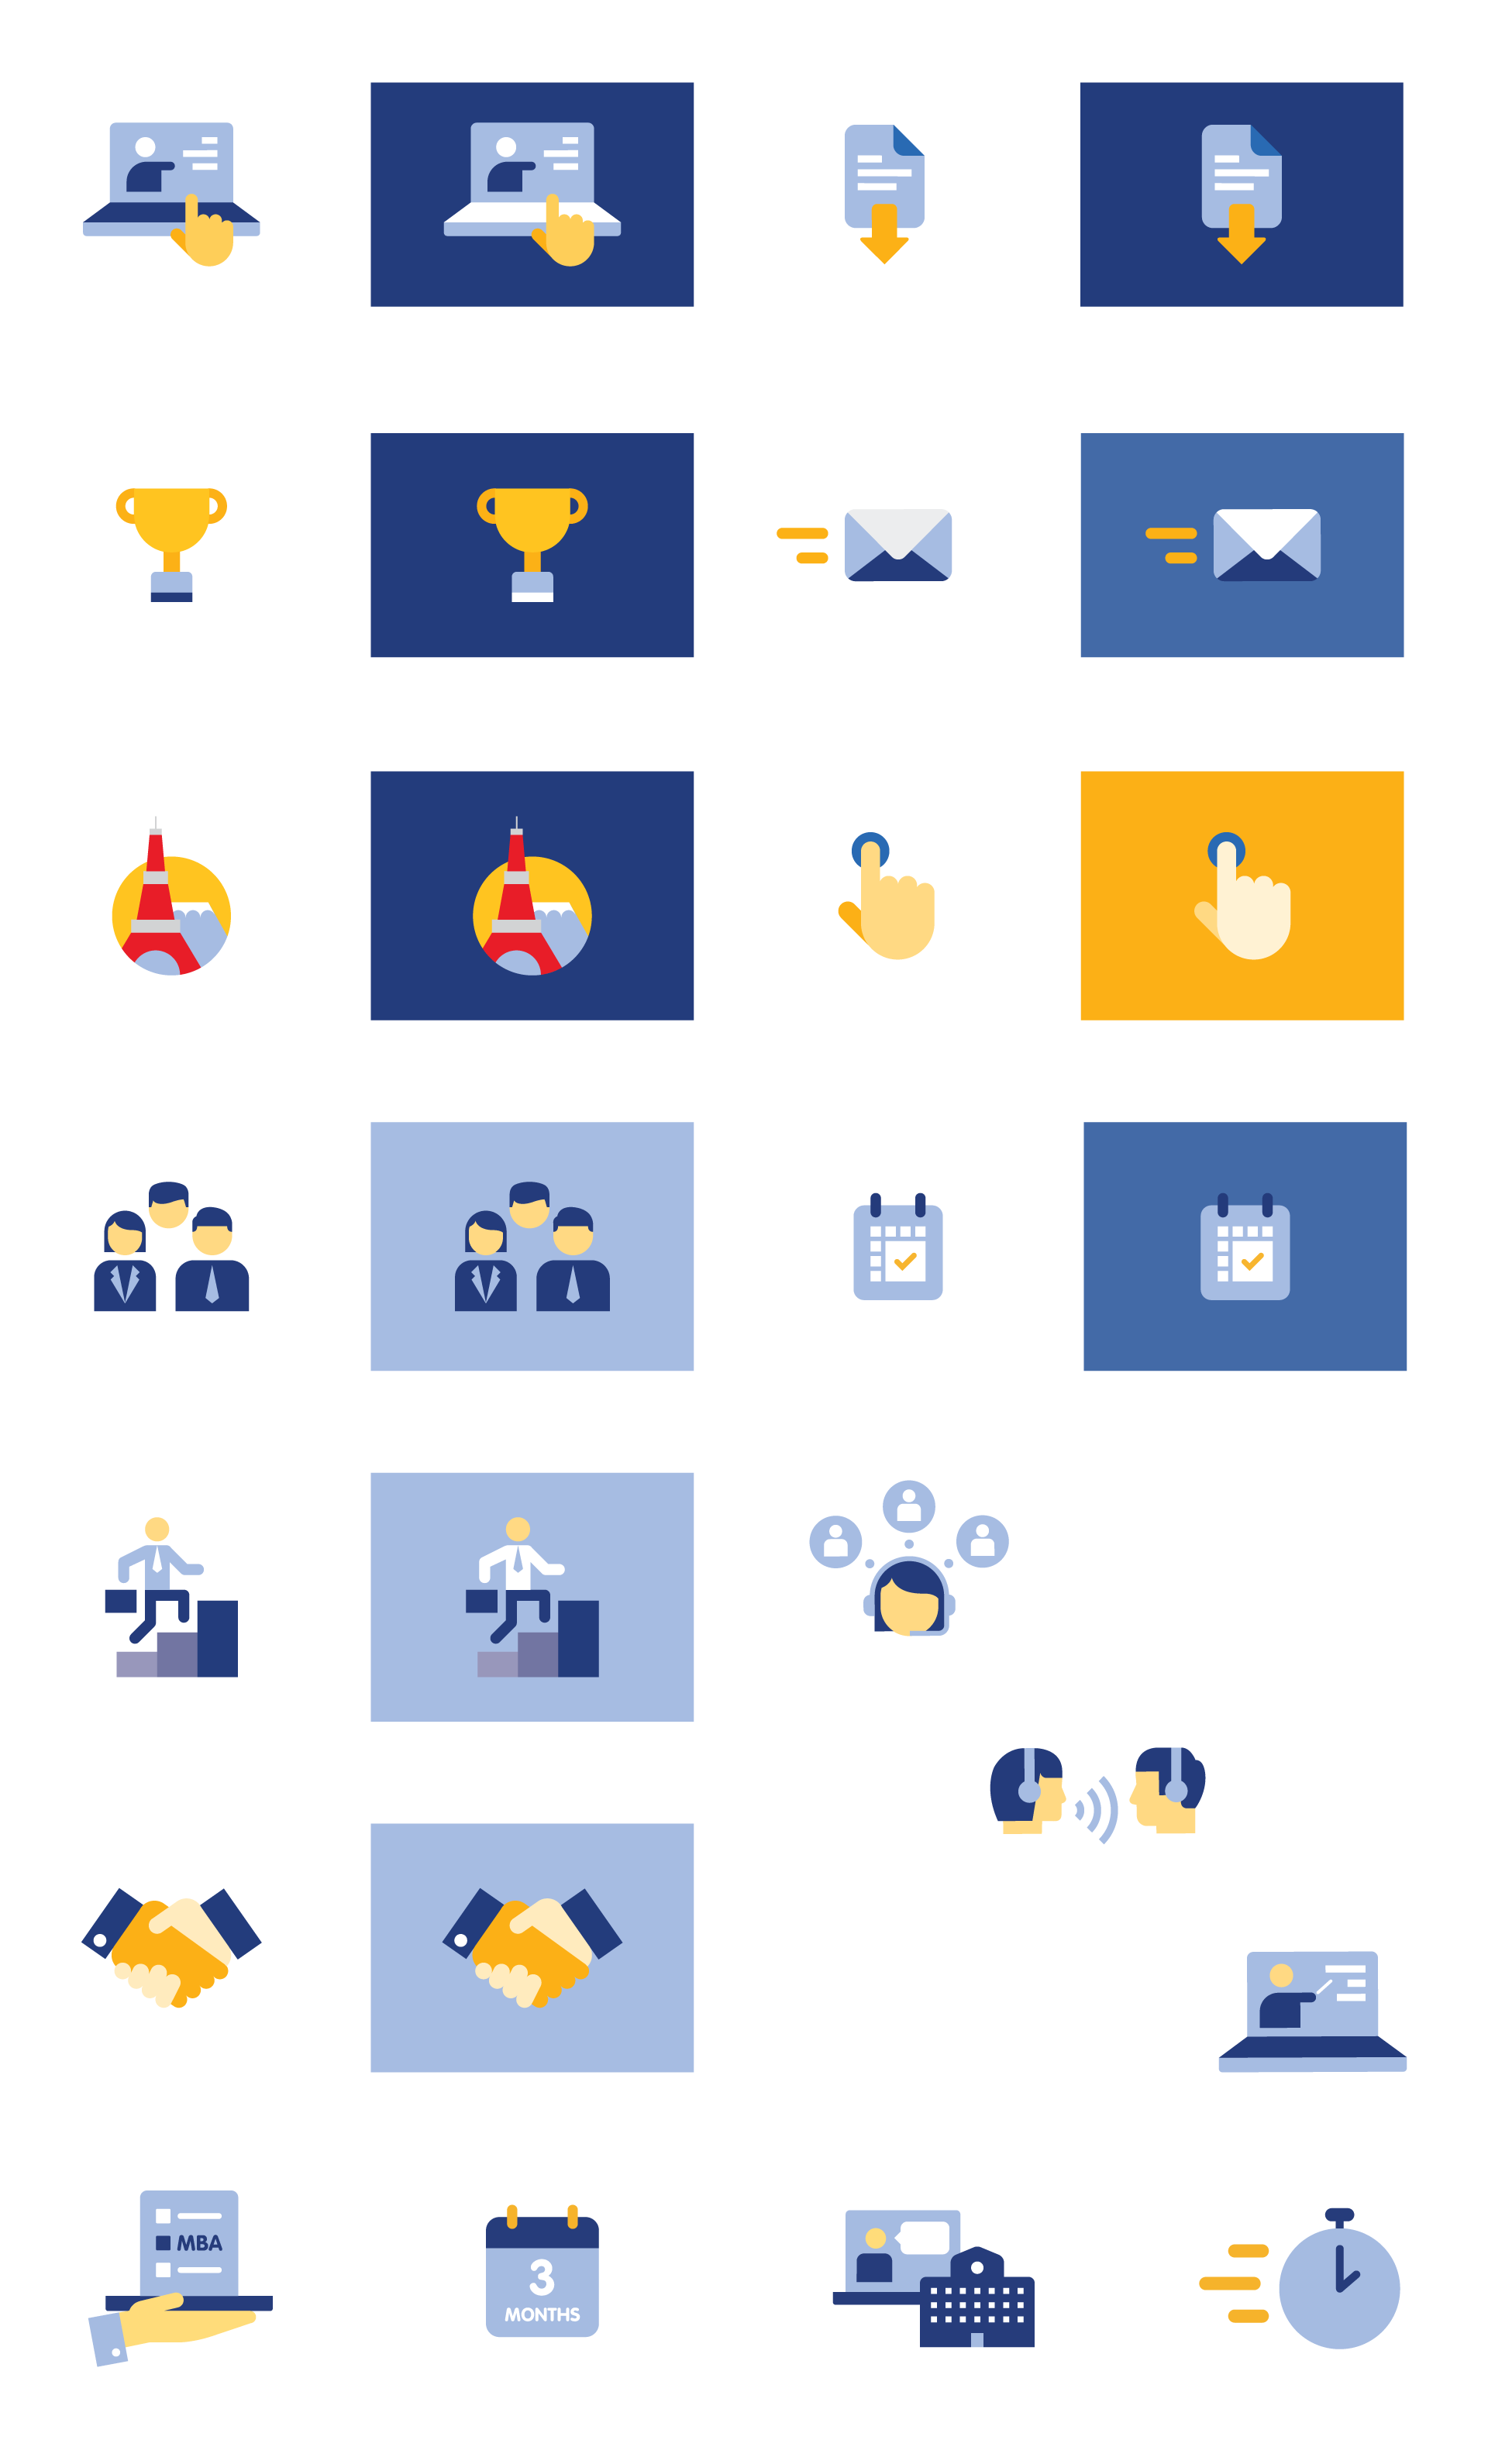 Globis University - Web Icon Design and Illustrations